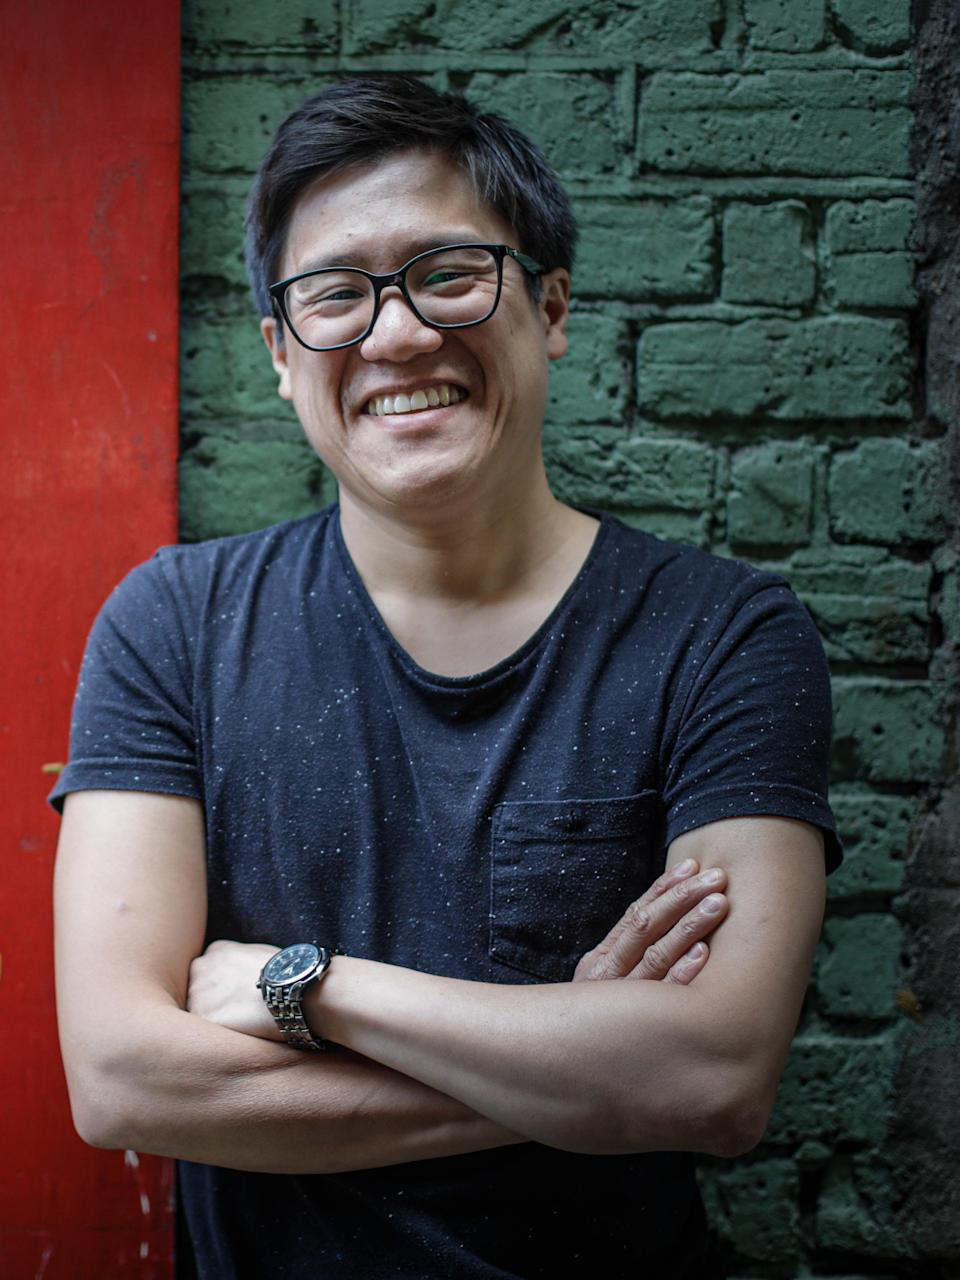 Jeremy Pang founded the School of Wok, an award-winning Asian cookery school, in 2009 (Jeremy Pang)